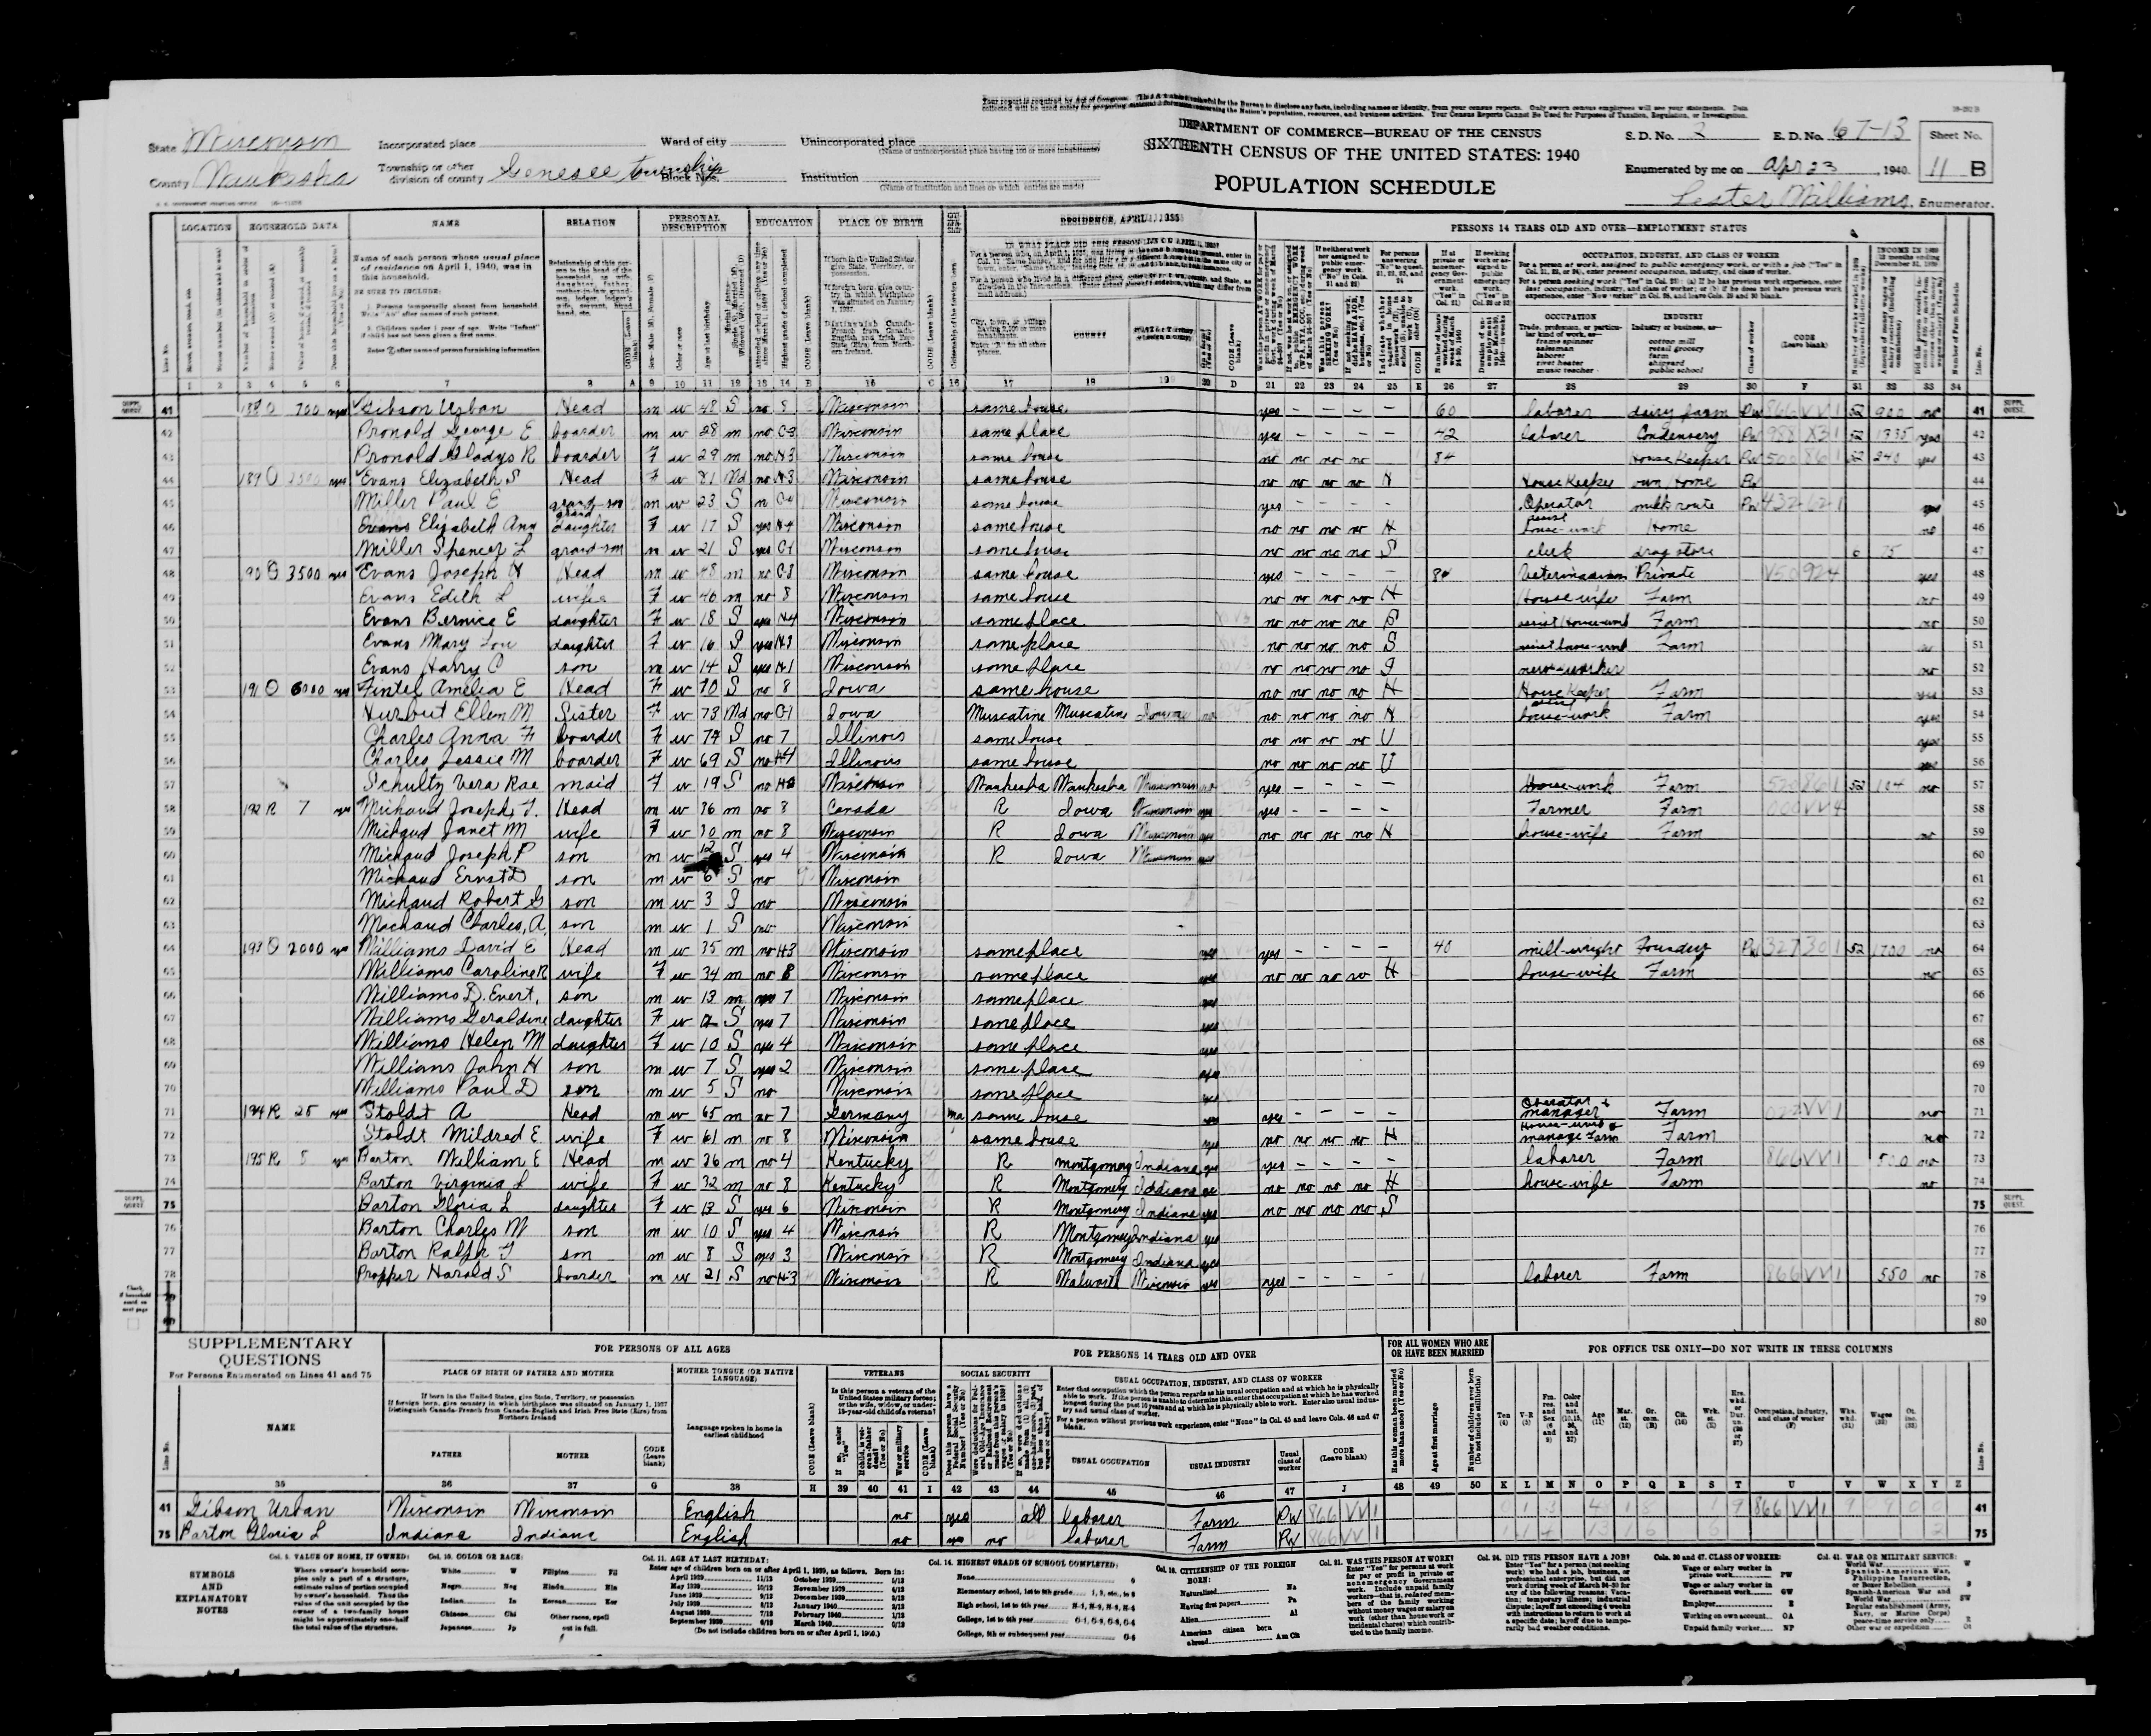 1940 Census showing Joseph (with his middle initial incorrectly put as a U instead of the correct H) with his family